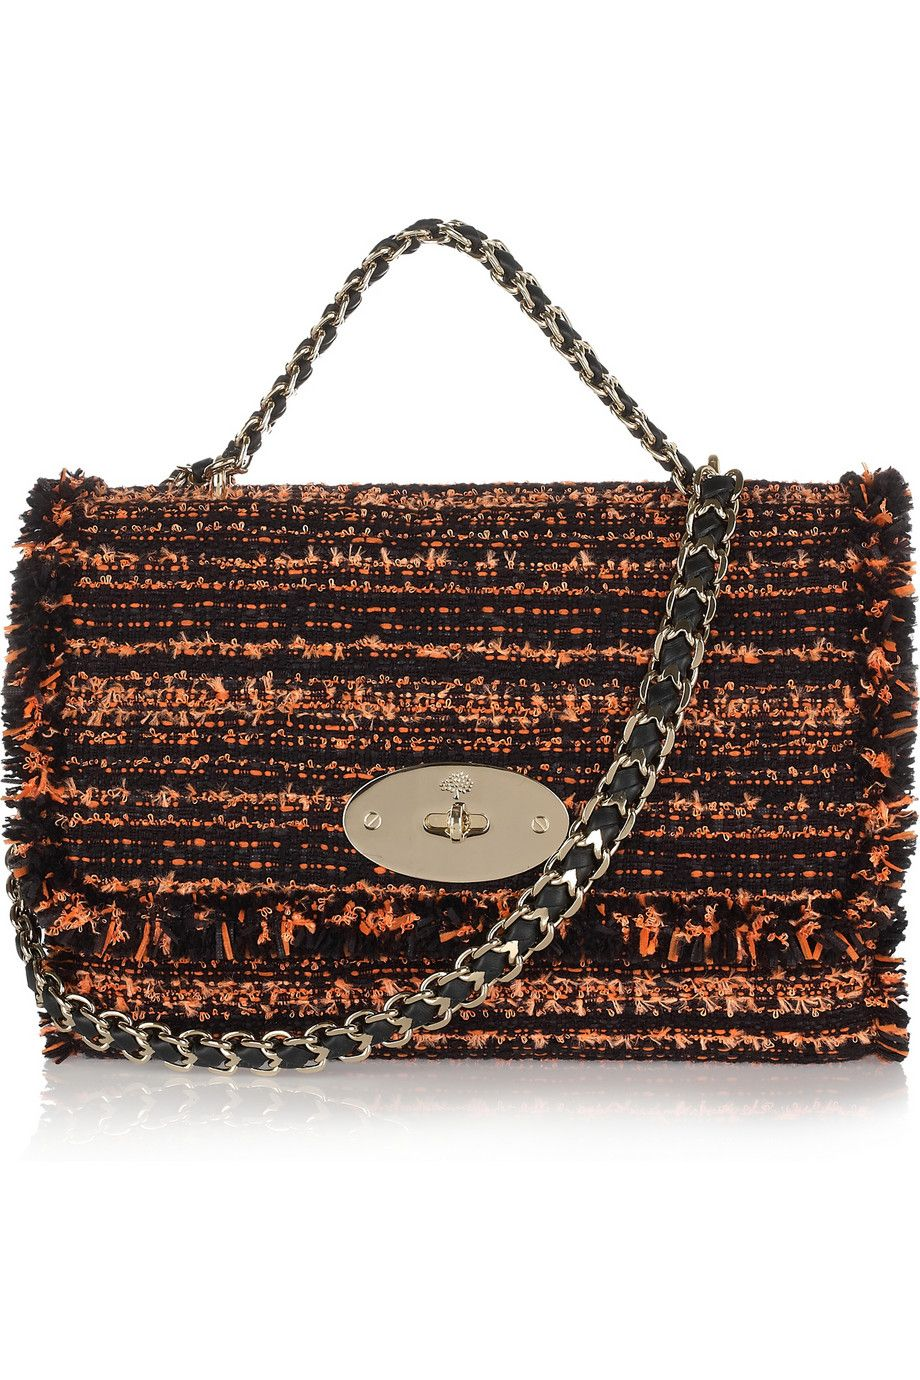 e23e62a7d66 Mulberry Lily boucle tweed shoulder bag 1 580x870 | Bags and ...